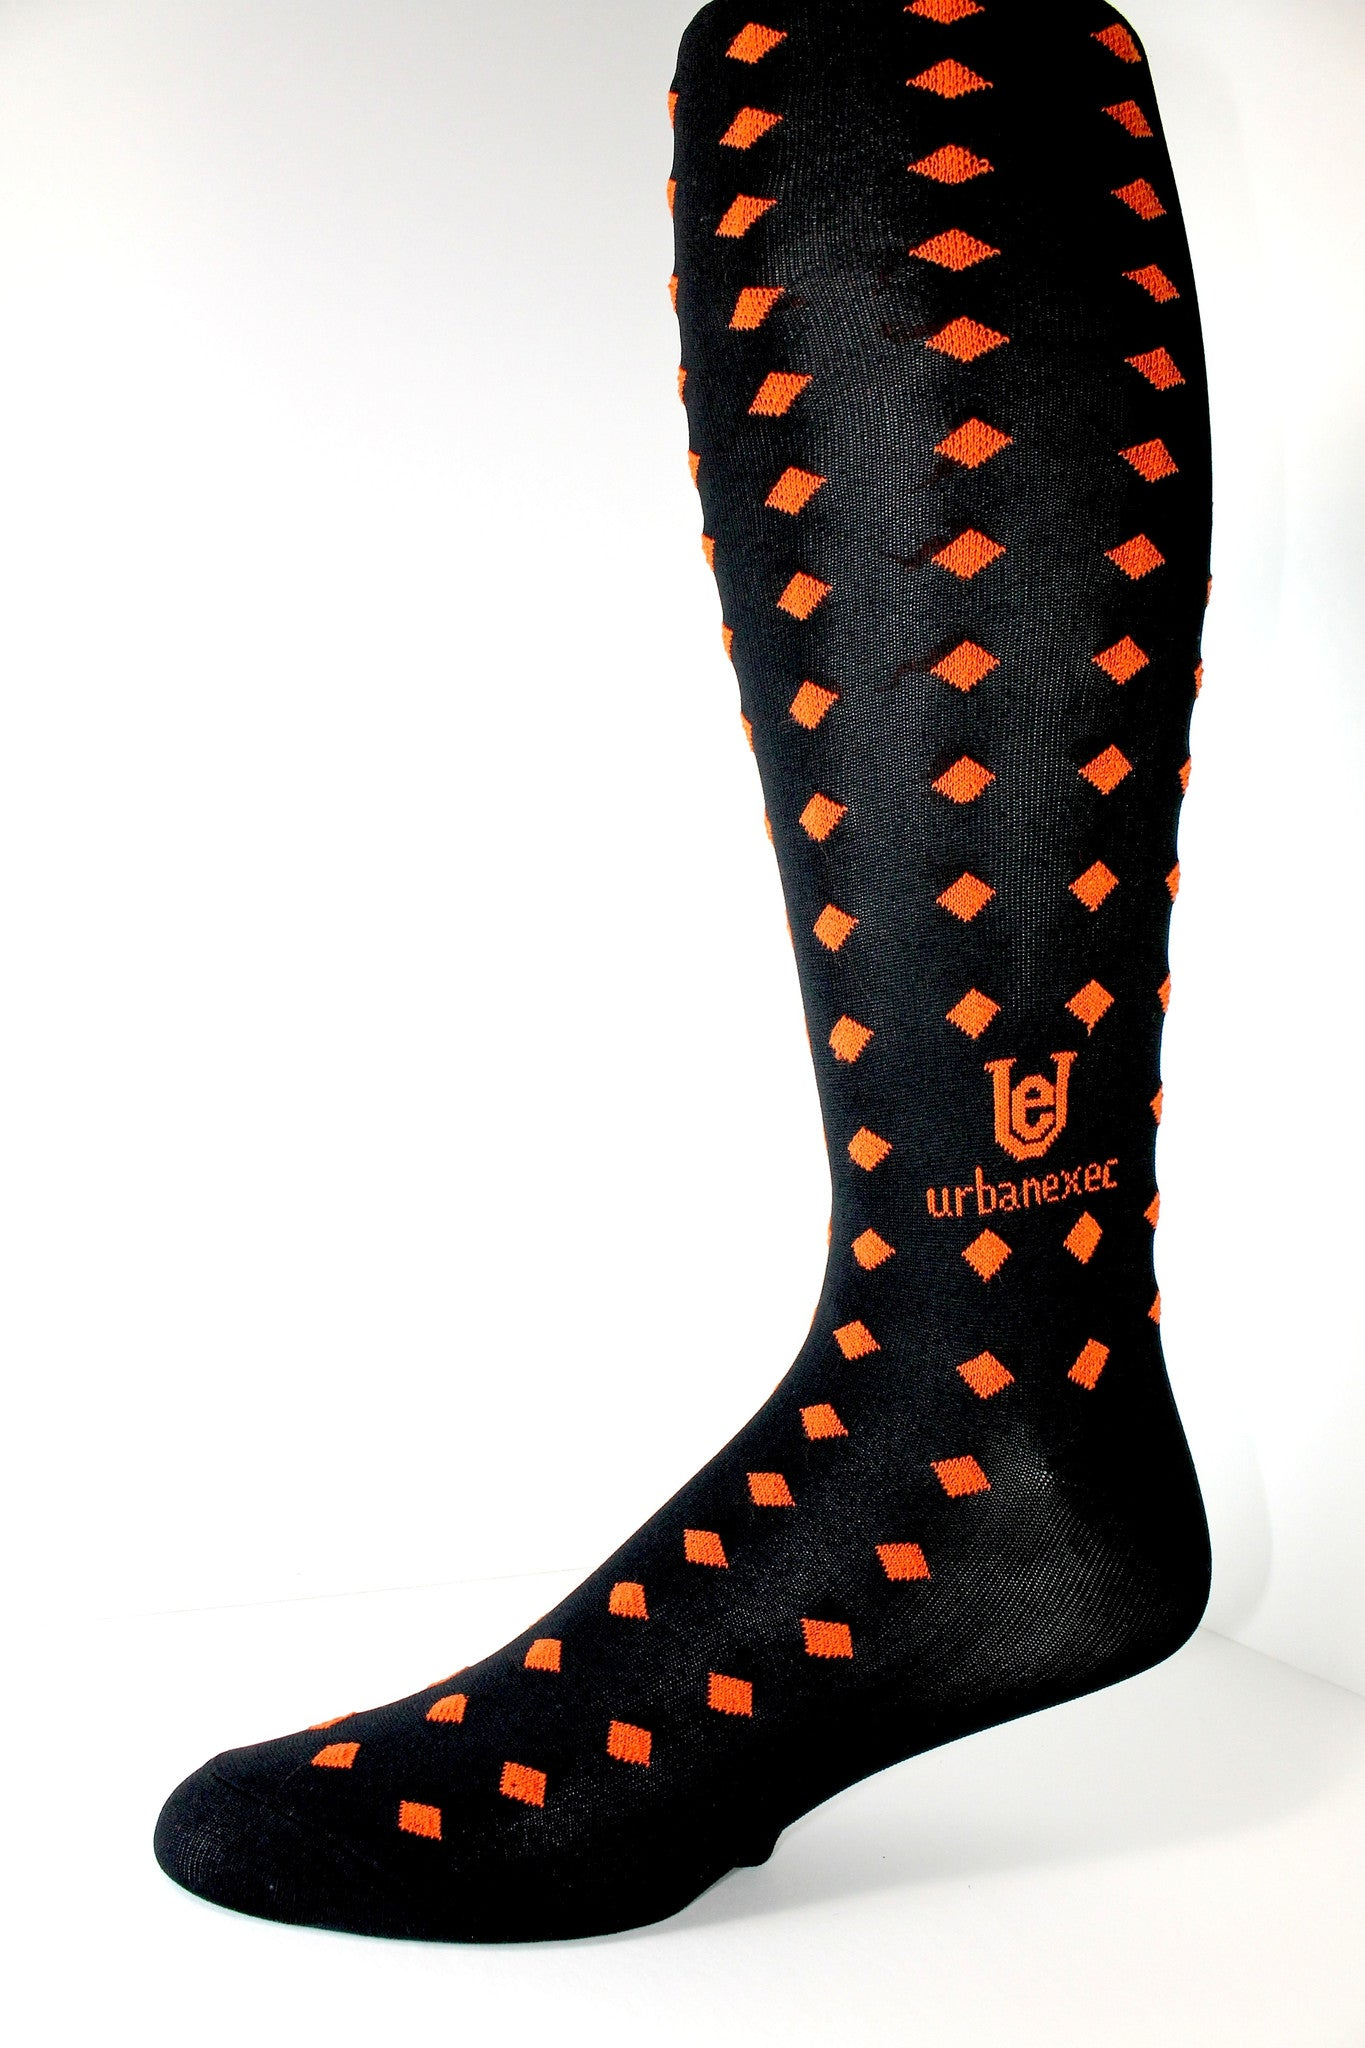 Bold Black/Orange GameDay Team Men's Socks with Diamonds